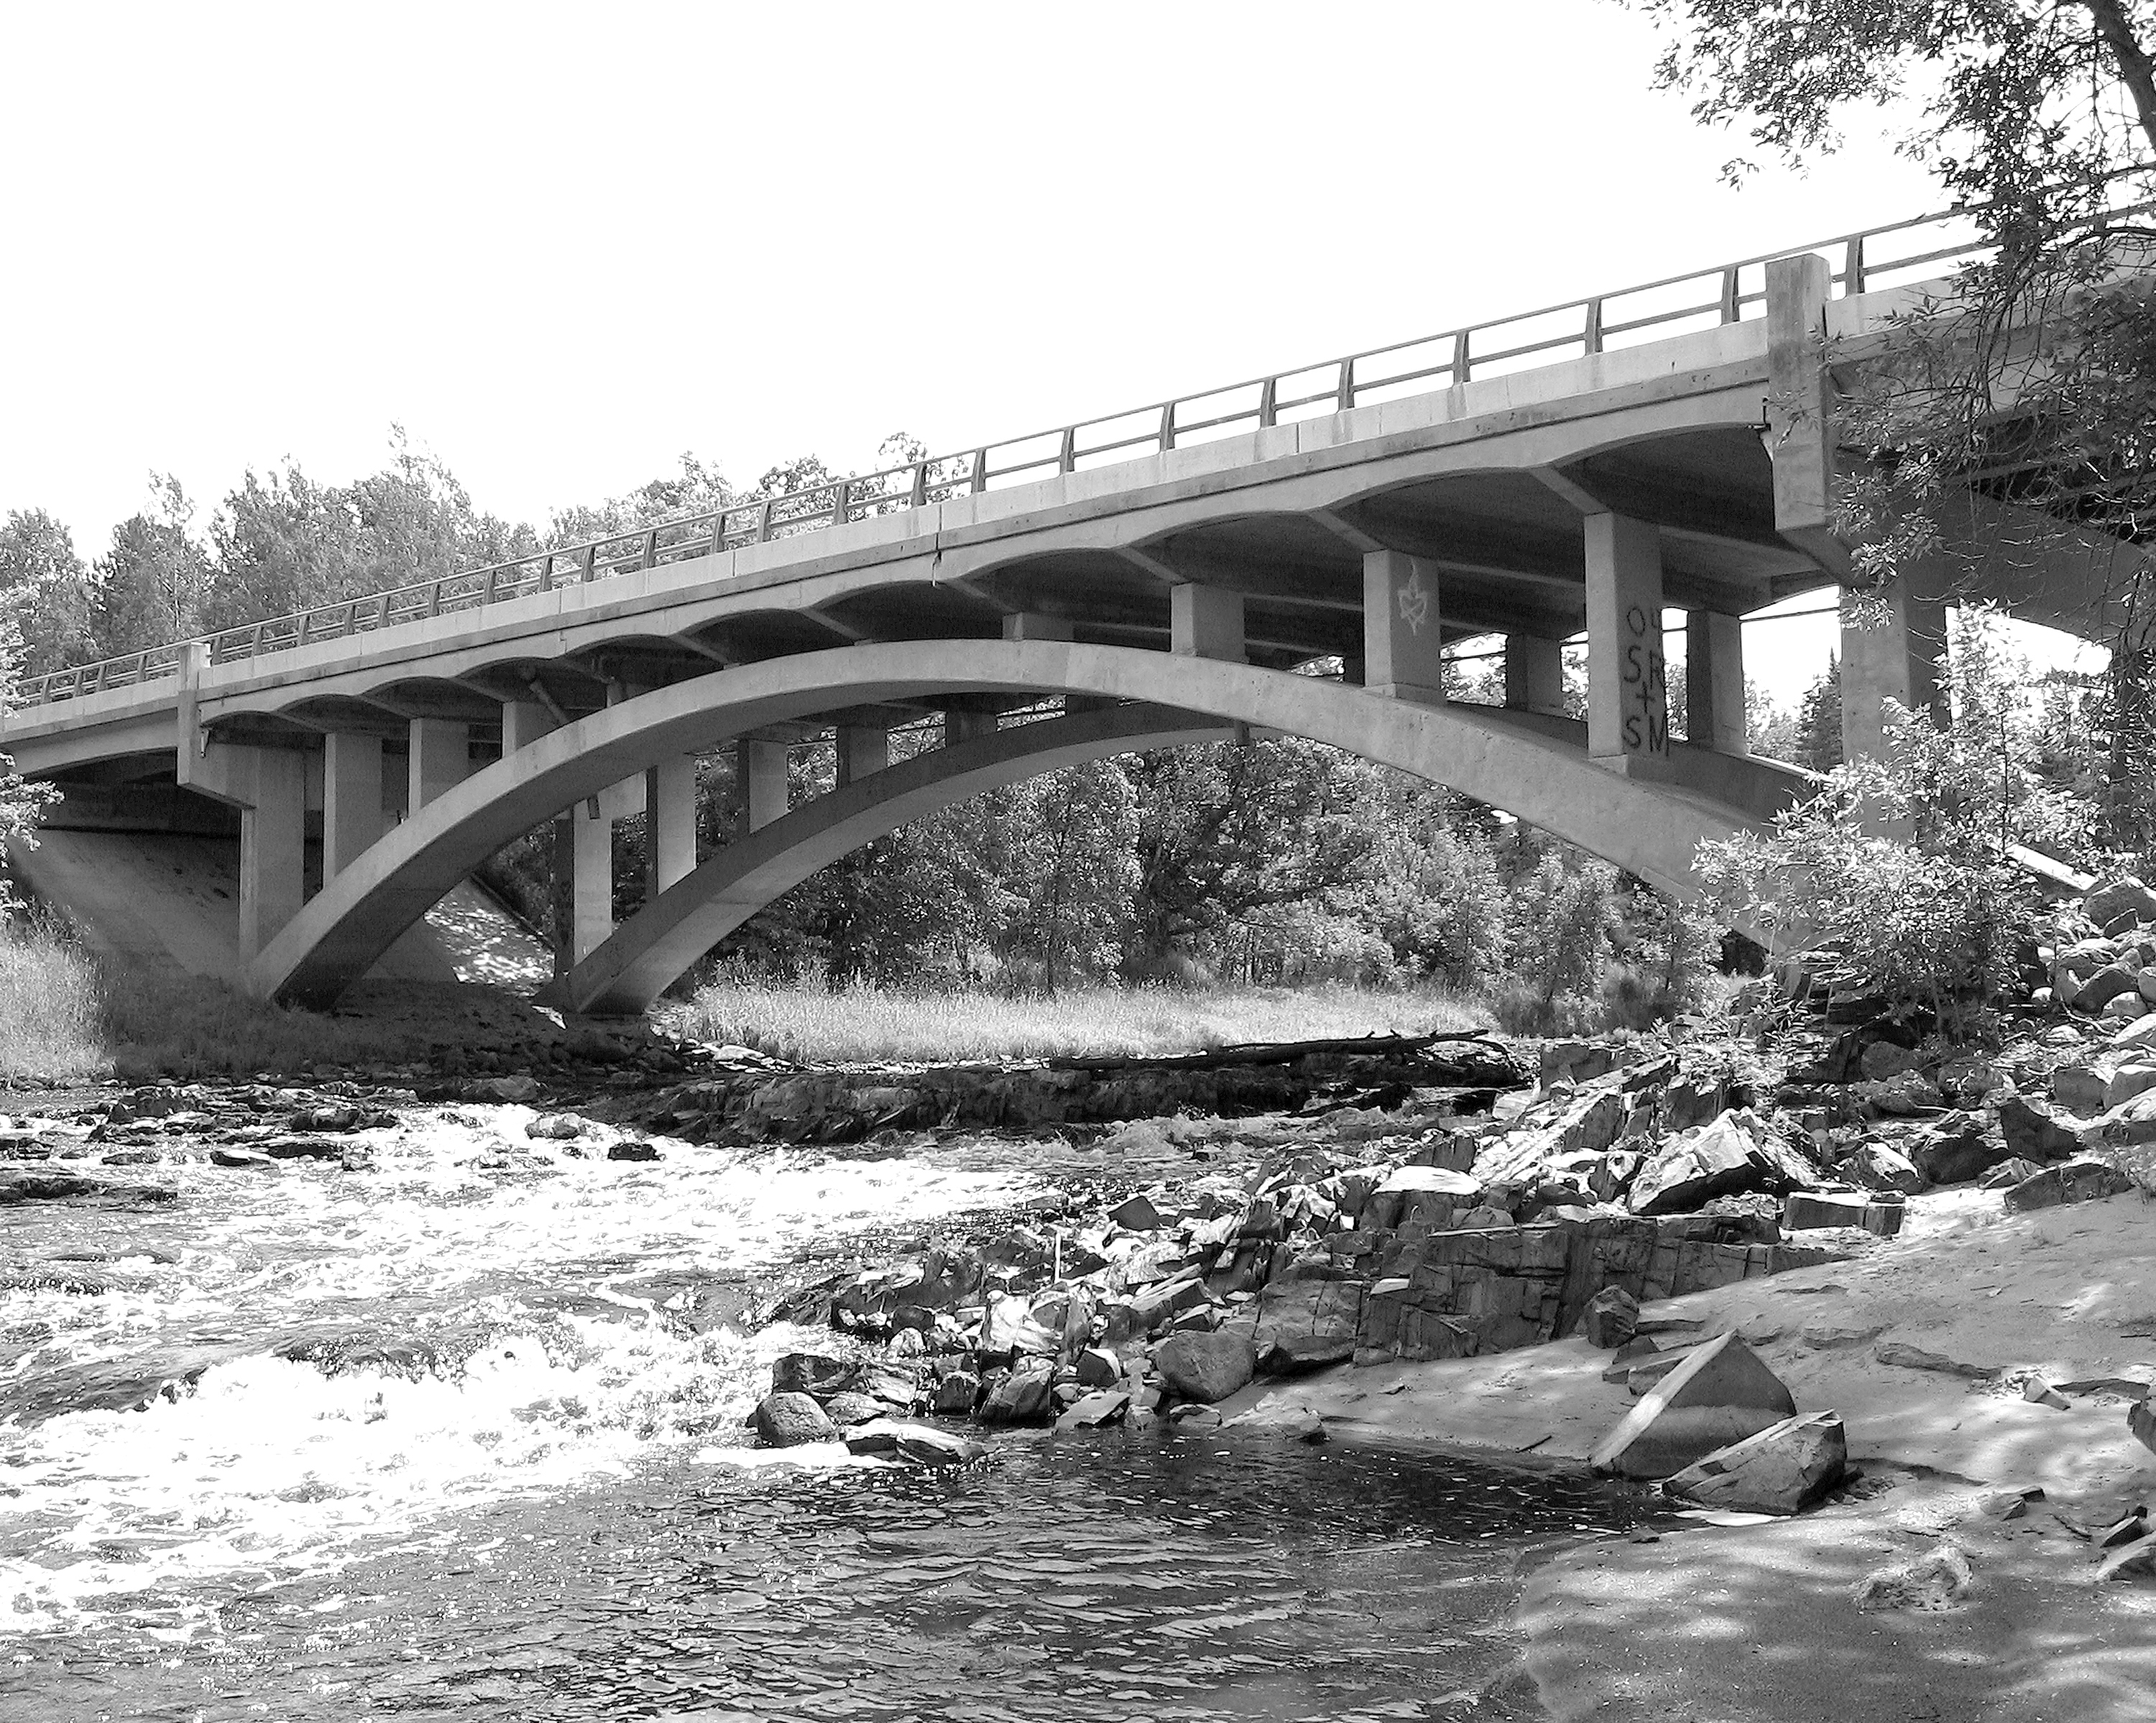 Bridge 5557 - MHPR LW-CLE-001-05 (Please credit Daniel R. Pratt and the Minnesota Historic Property Record)